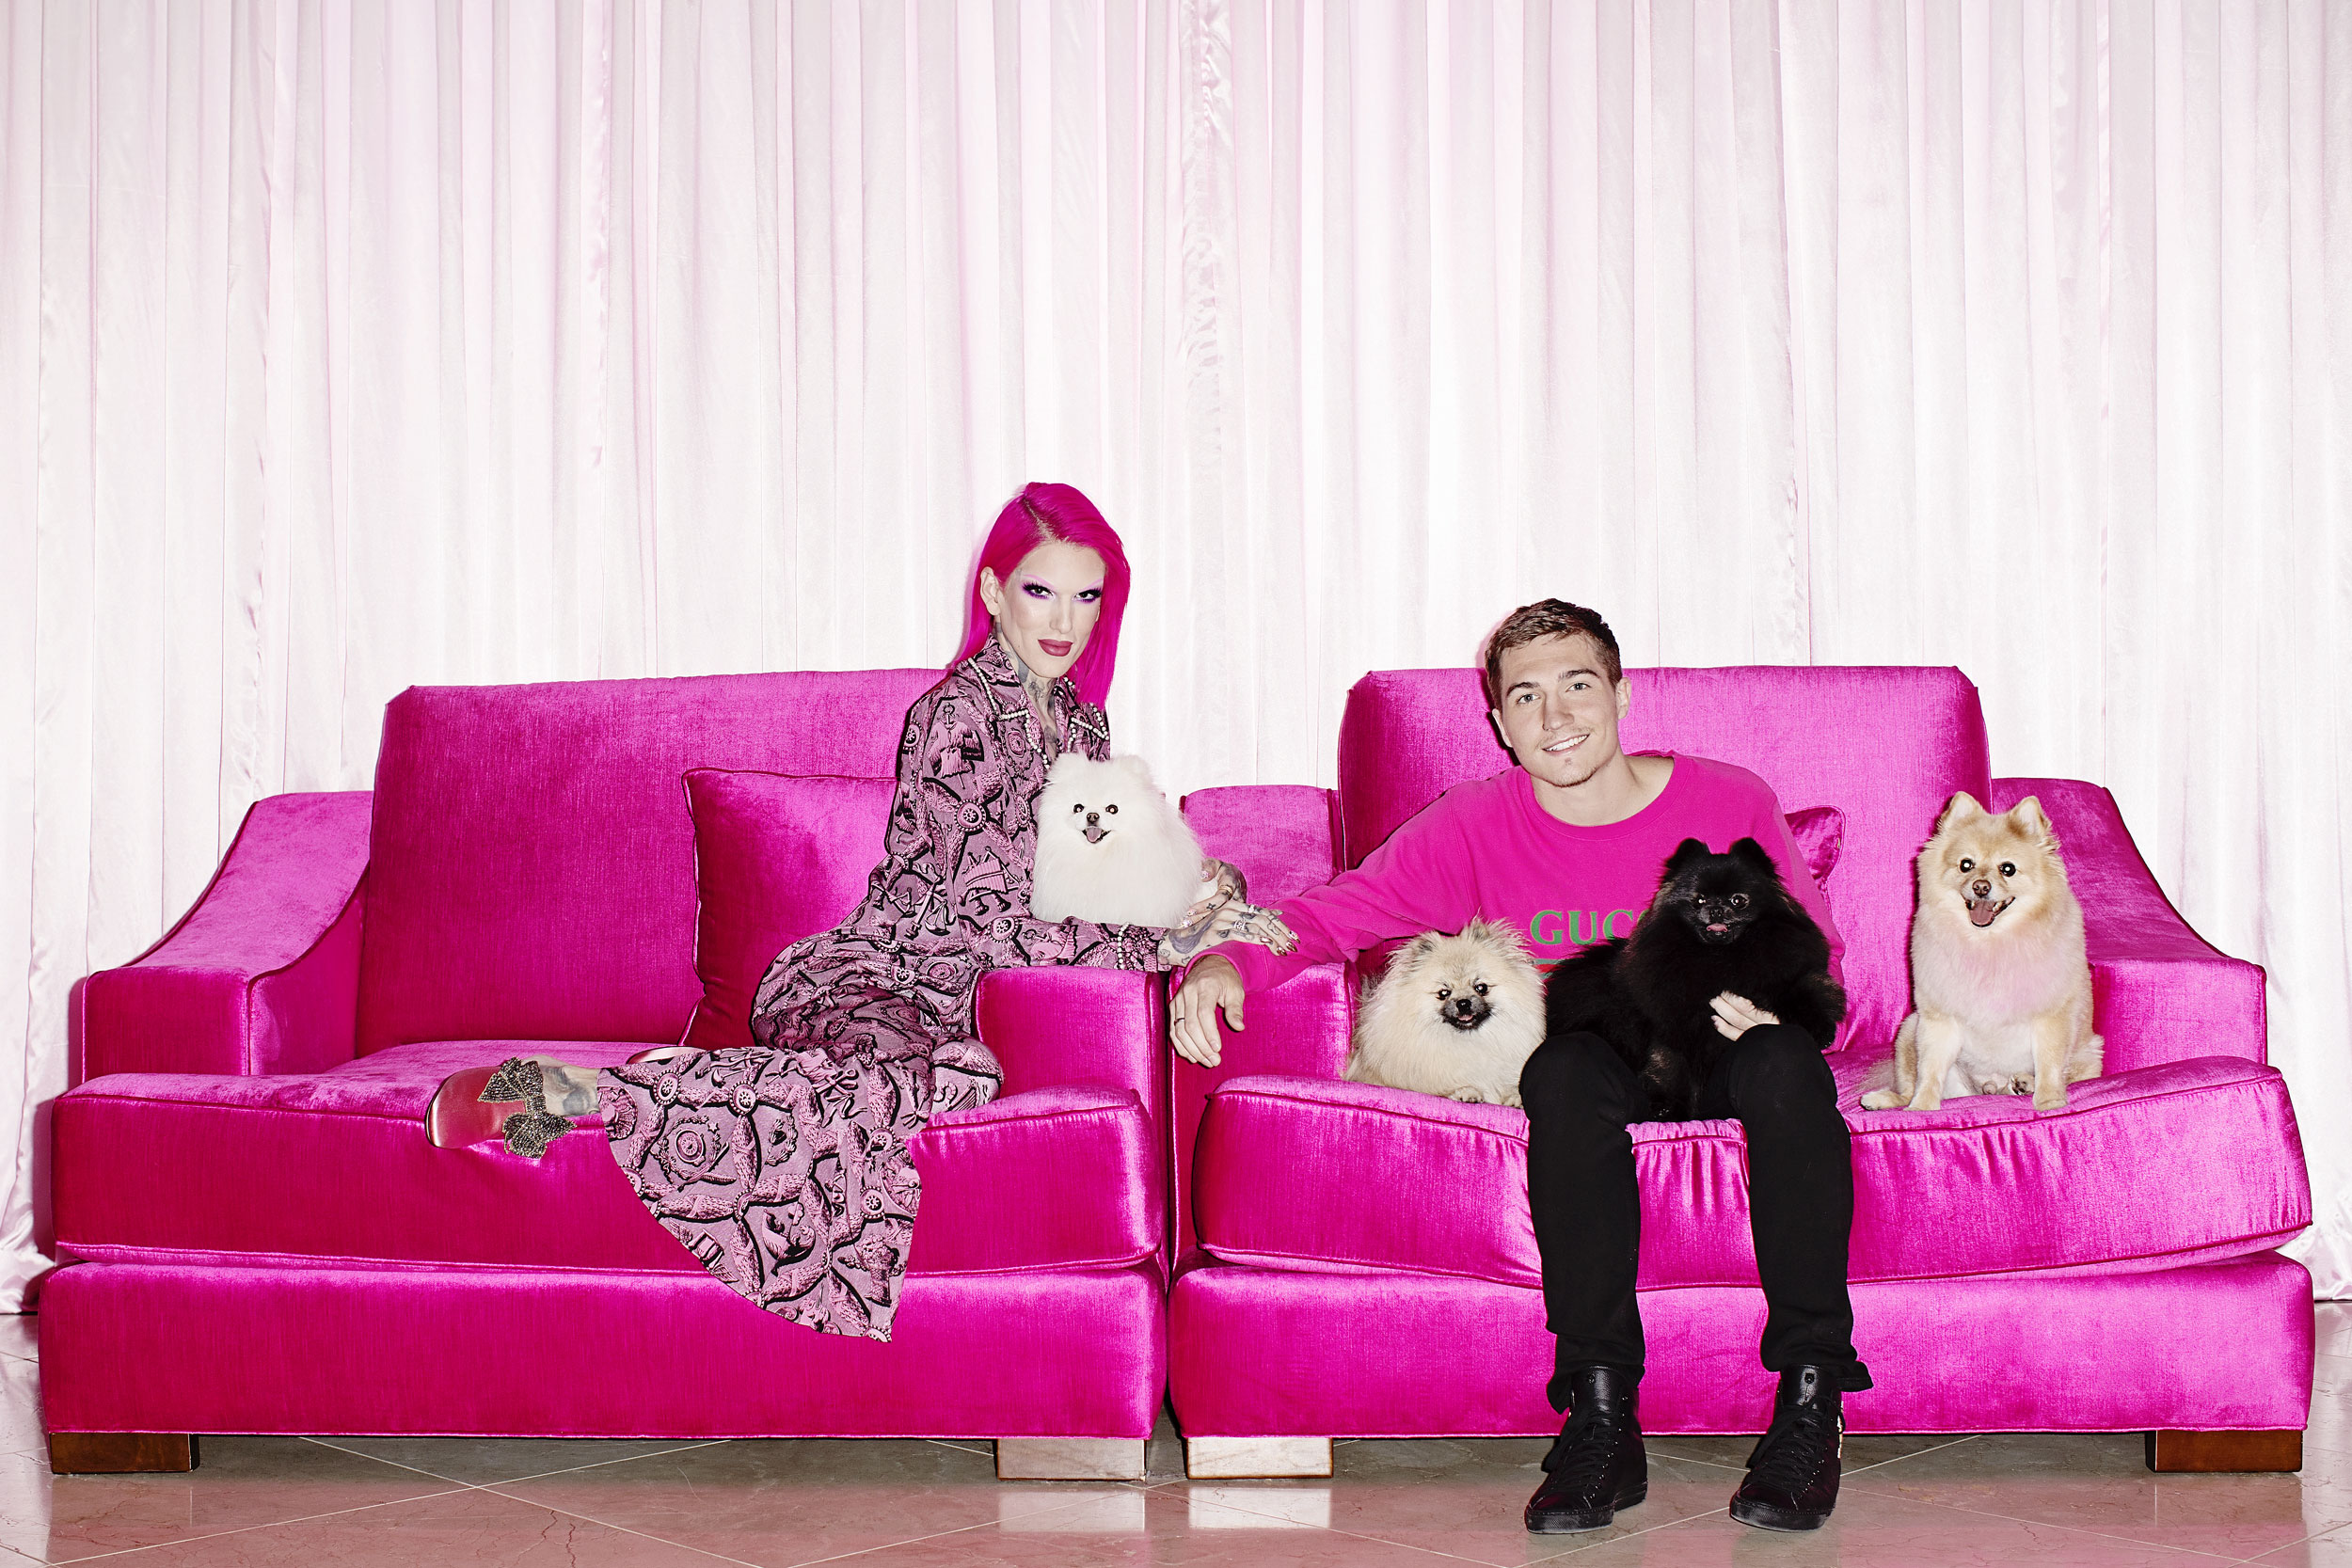 Youtube celebrity Jeffree Star sitting on a pink sofa with this dogs